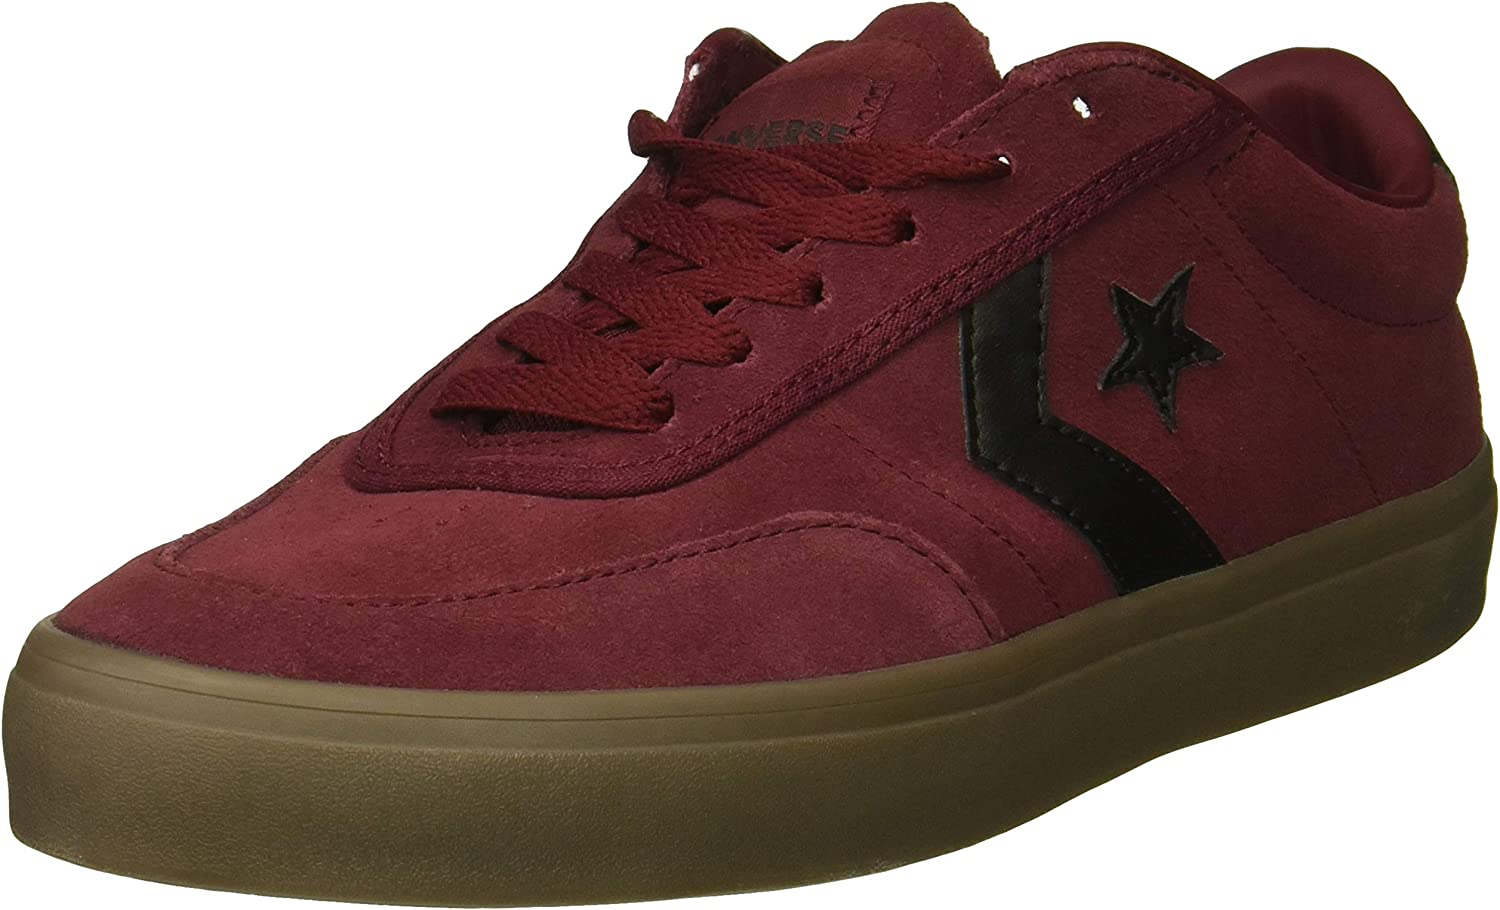 Converse Men's Courtlandt Suede Leather Accent Low Top Sneaker, Dark Burgundy Black Brown, 5.5 M US